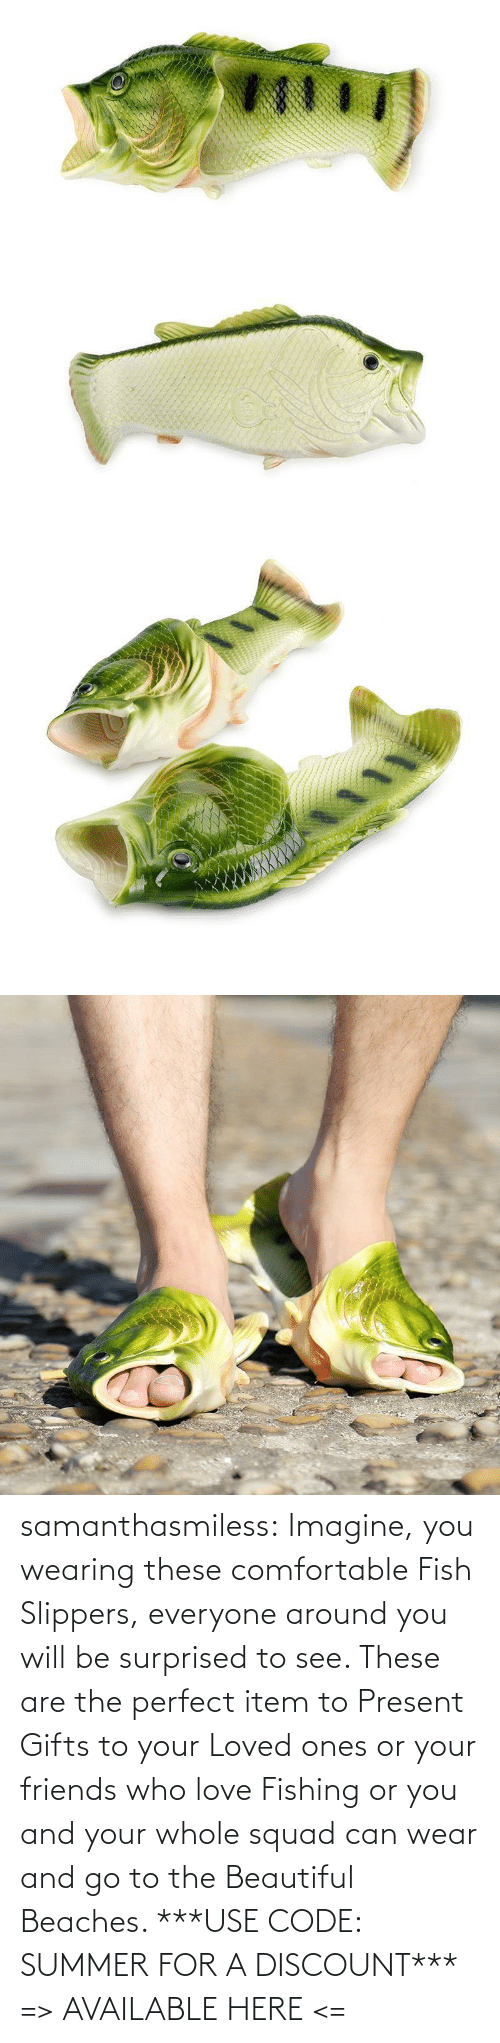 beautiful: samanthasmiless: Imagine, you wearing these comfortable Fish Slippers, everyone around you will be surprised to see. These are the perfect item to Present Gifts to your Loved ones or your friends who love Fishing or you and your whole squad can wear and go to the Beautiful Beaches.  ***USE CODE: SUMMER FOR A DISCOUNT*** => AVAILABLE HERE <=